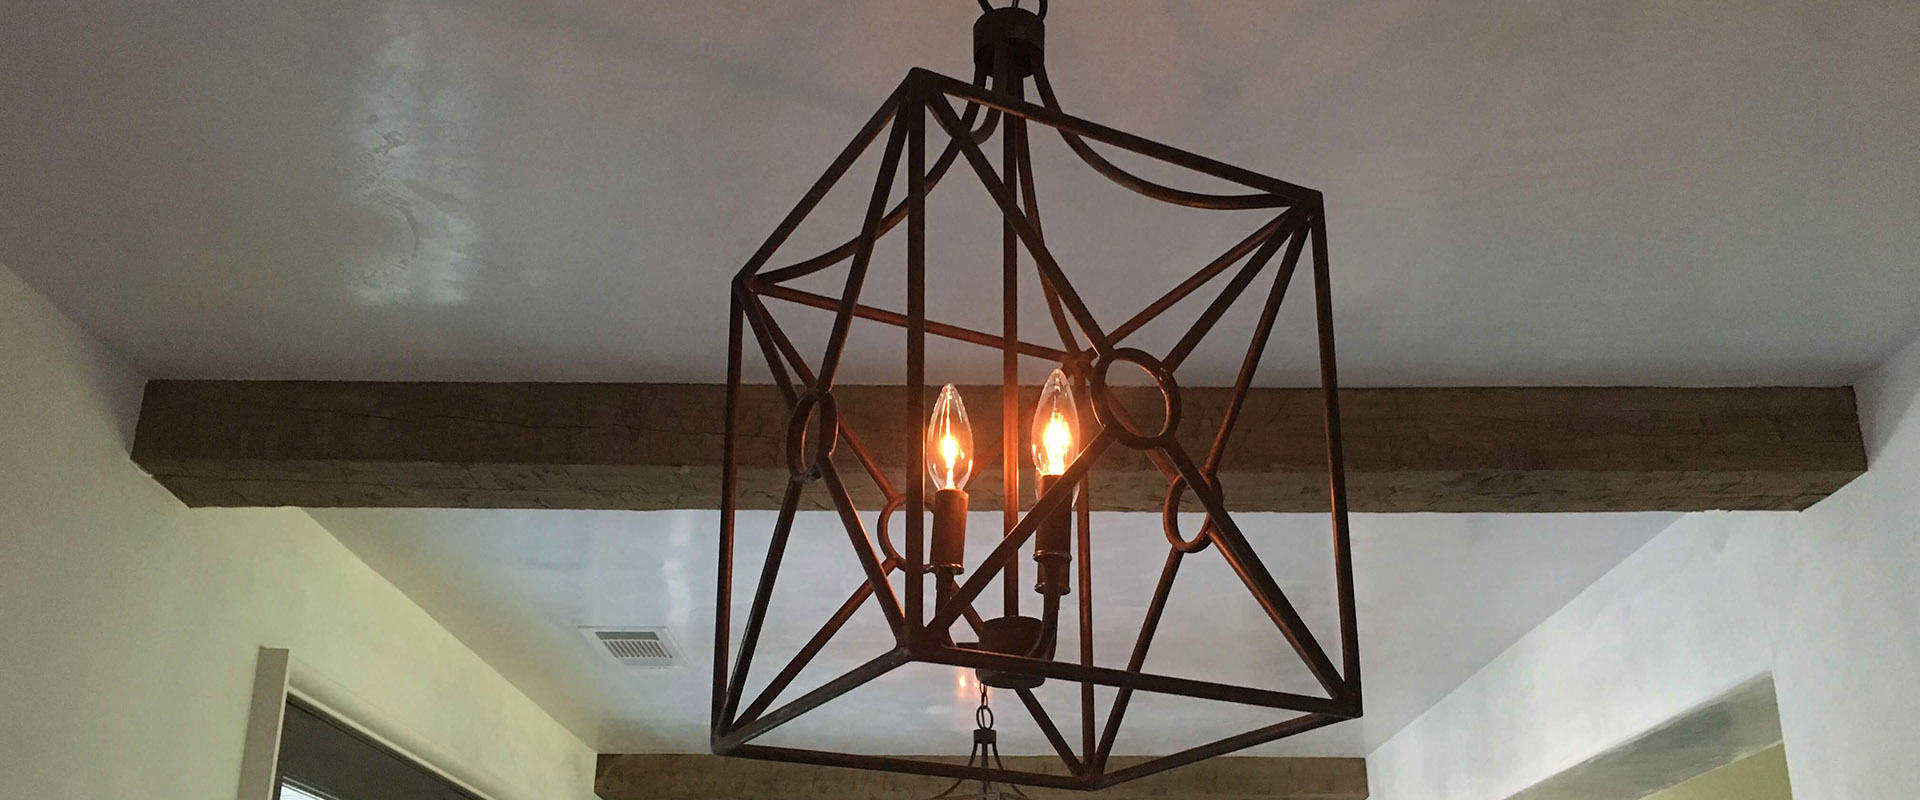 Lighting Fixtures, Lighting, Decorative Fixtures, Design Lighting Group LLC, Design Lighting Group, Atlanta, GA